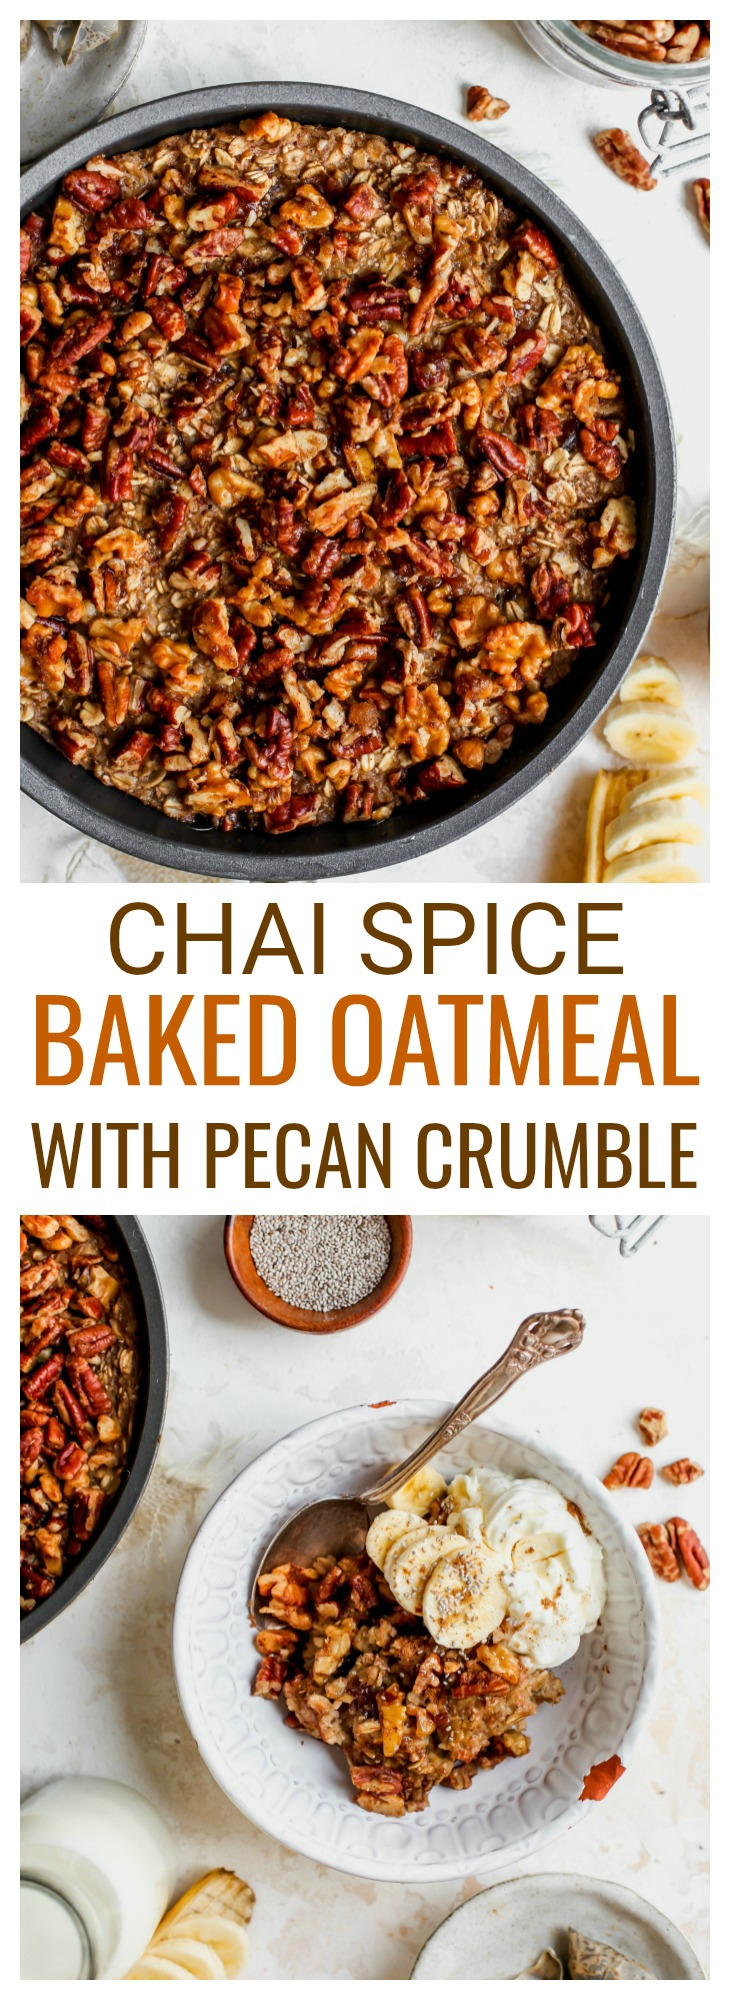 Baked Oatmeal with Chai Spice and Maple-Pecan Crumble